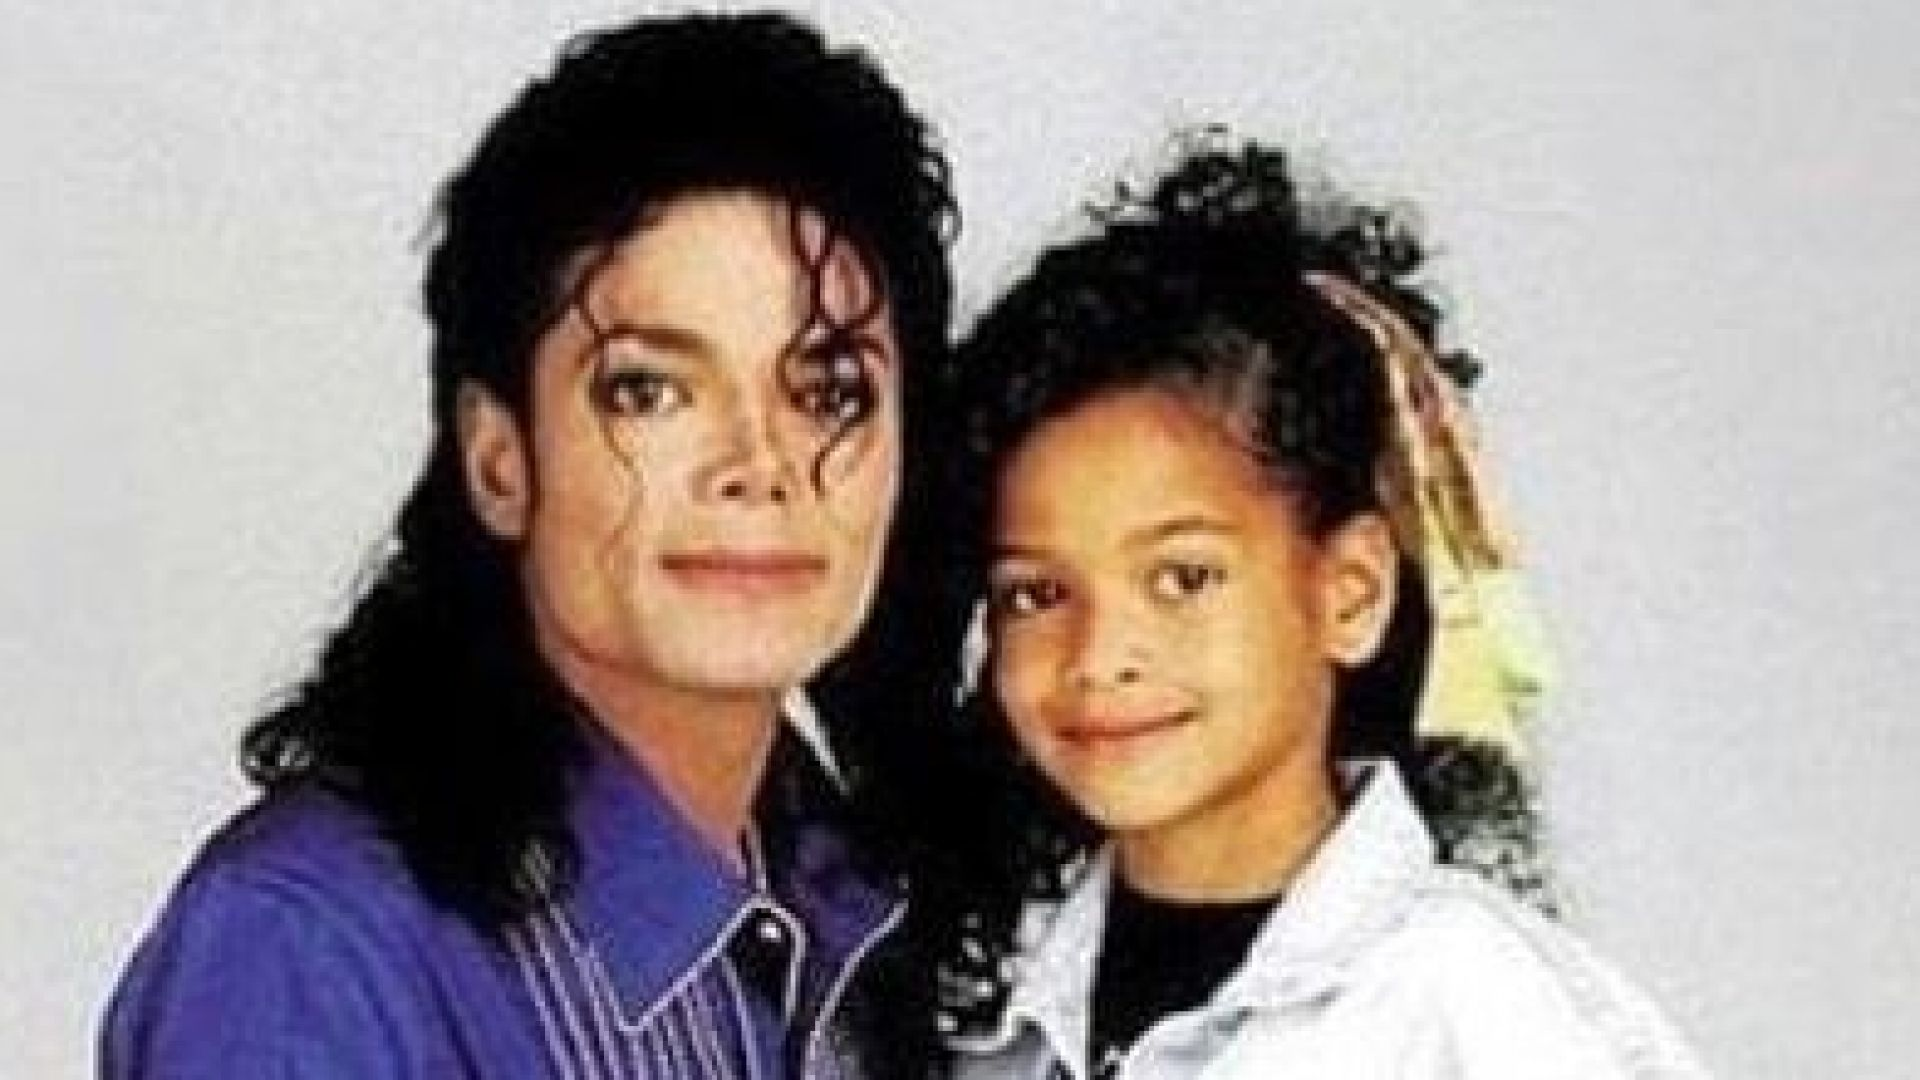 Michael Jackson and Brandy